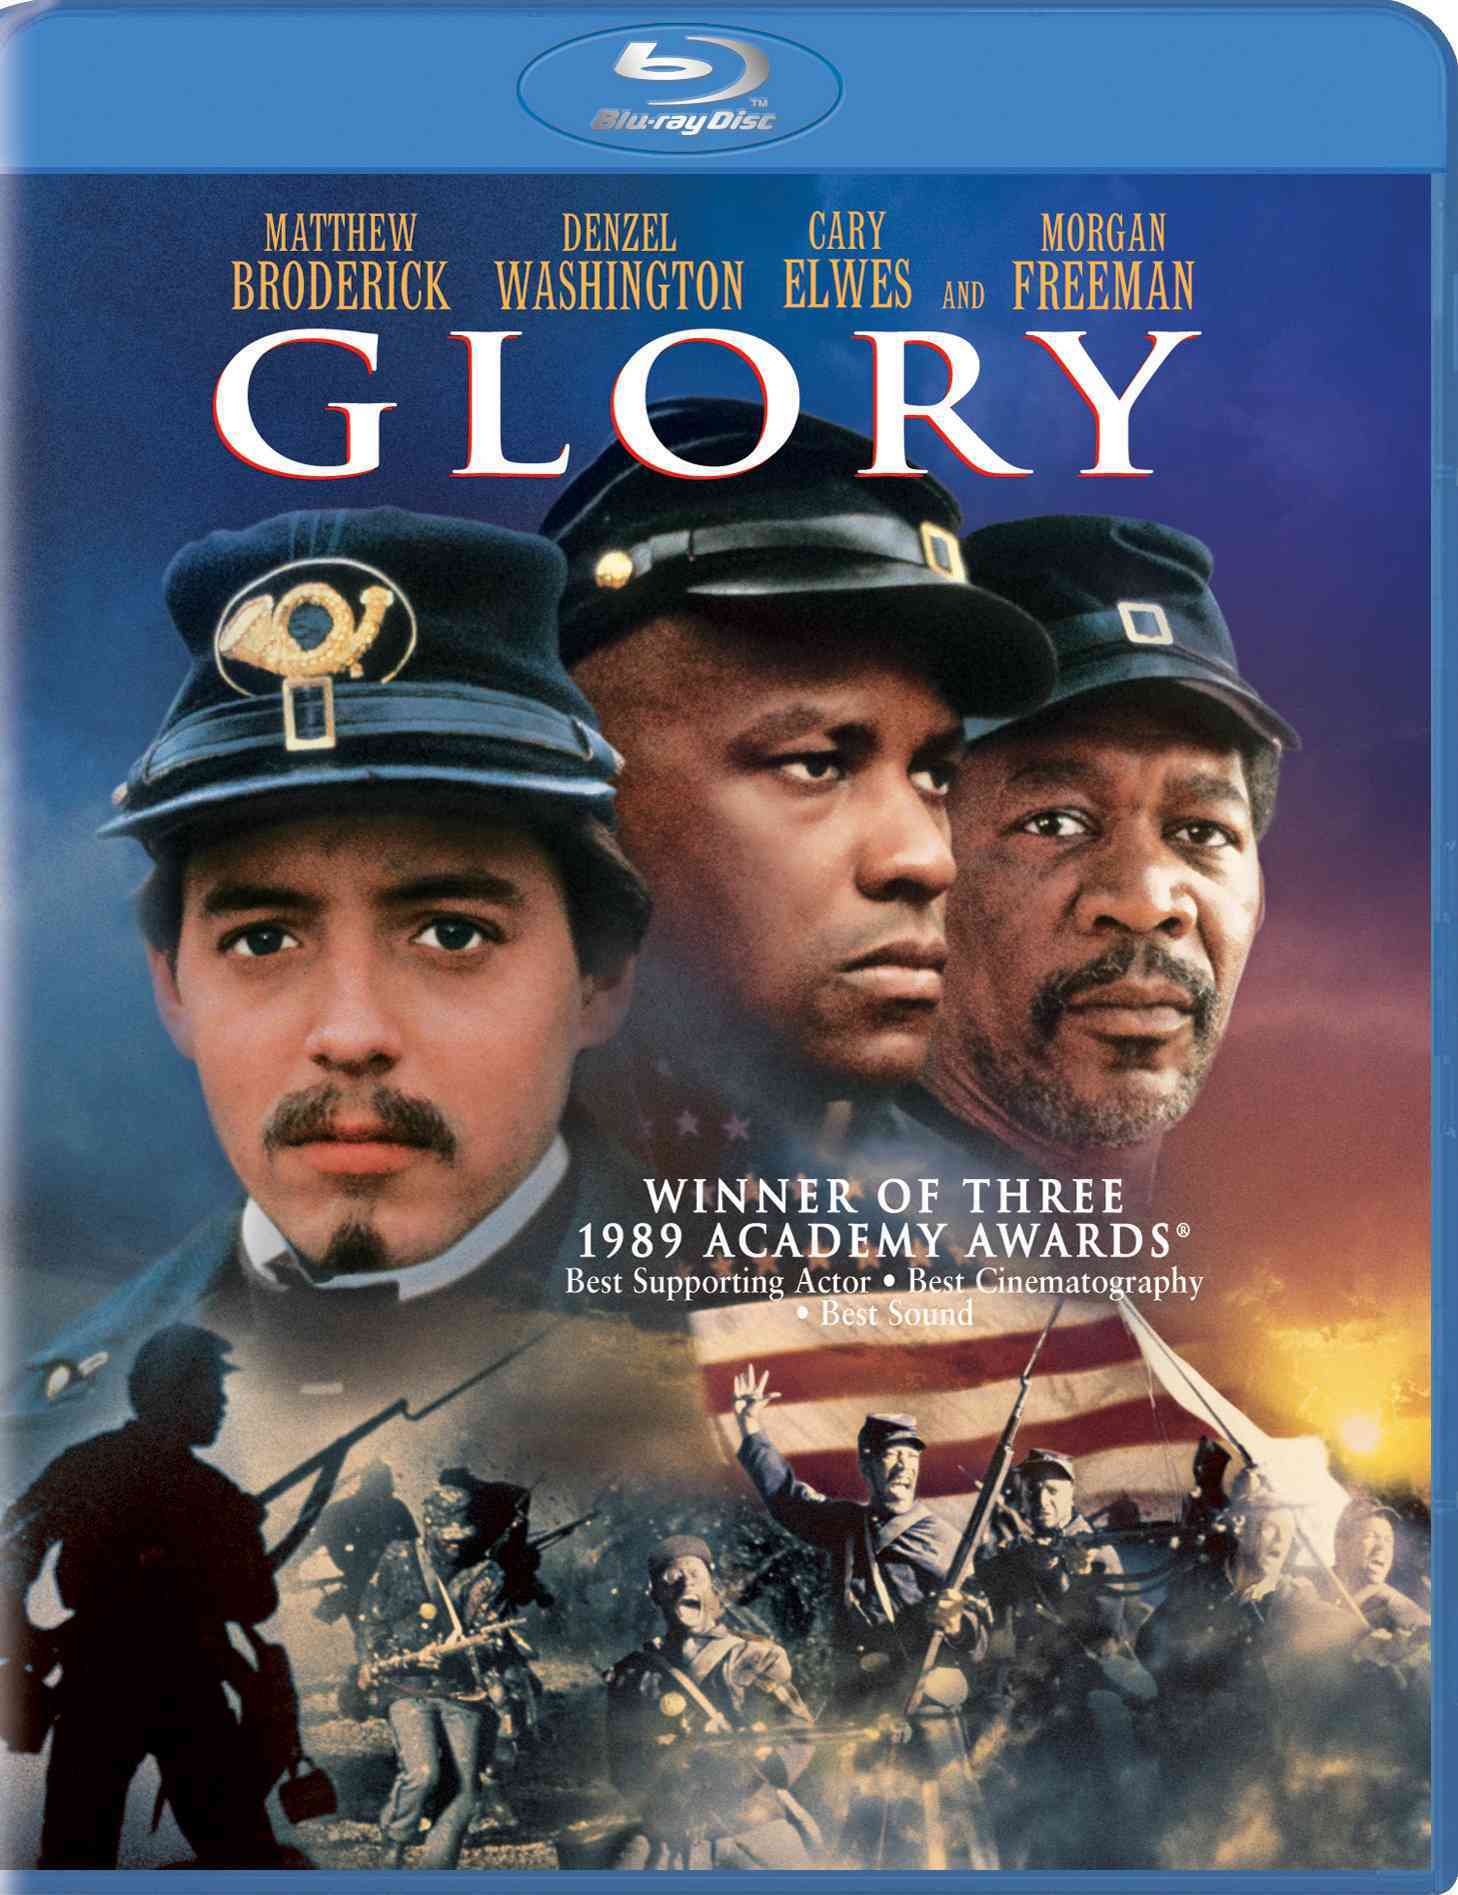 GLORY BY BRODERICK,MATTHEW (Blu-Ray)